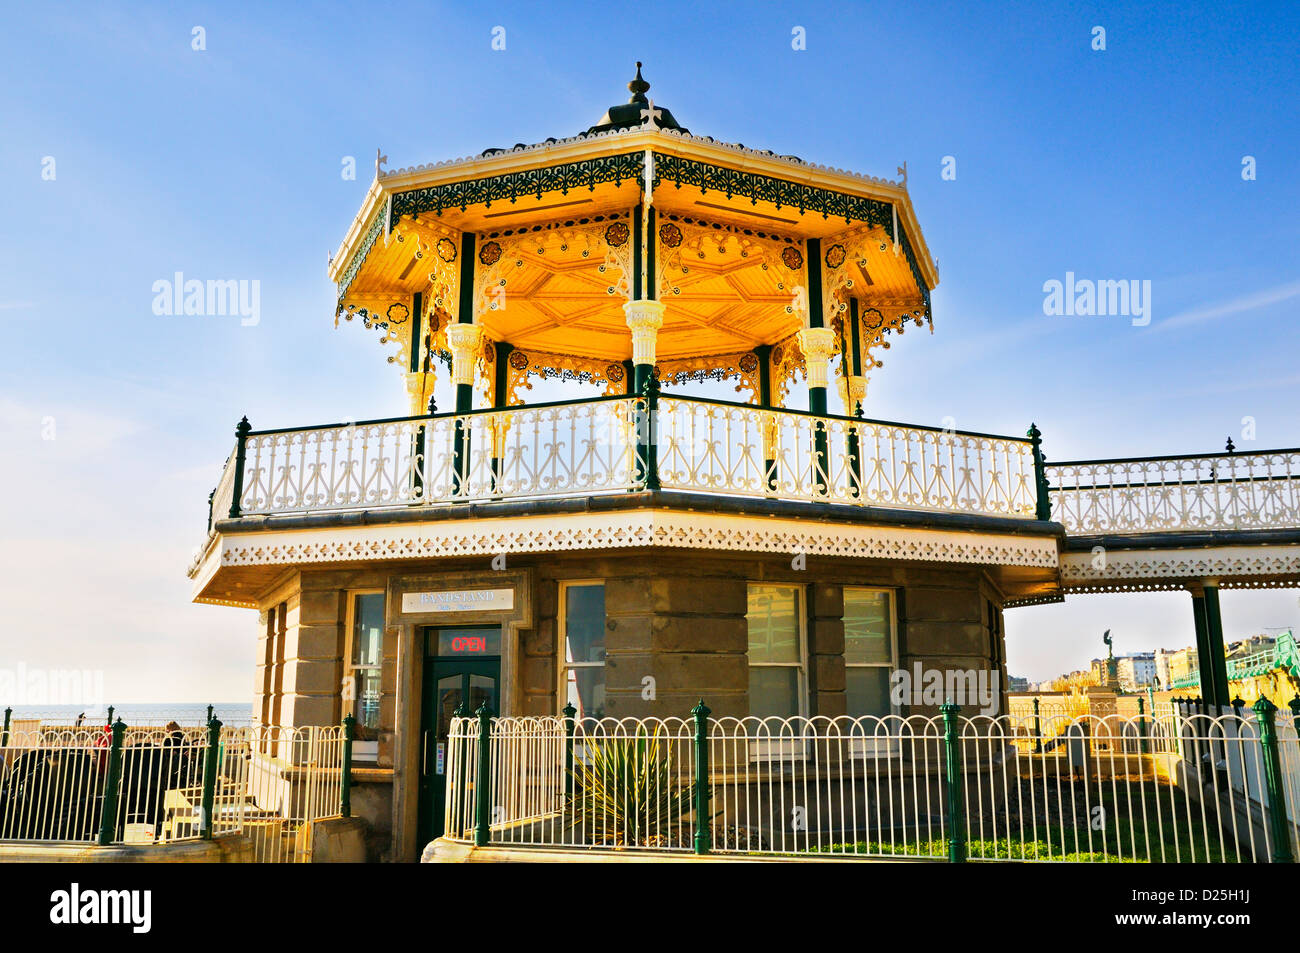 Brighton Bandstand, Brighton and Hove, East Sussex, UK - Stock Image